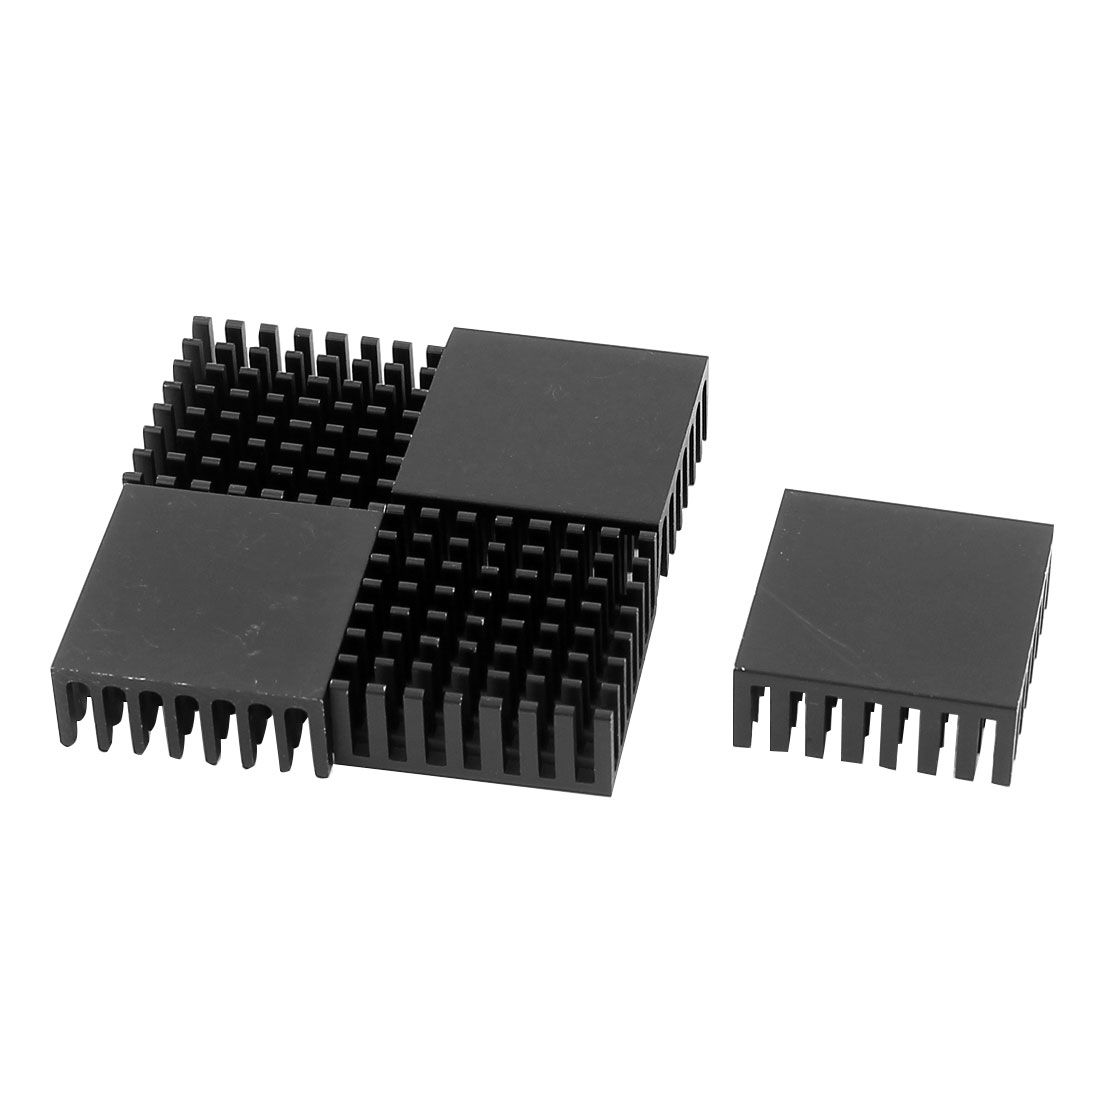 5 Pcs Black Aluminium CPU Radiator Heatsink Heat Sink 25mmx25mmx10mm